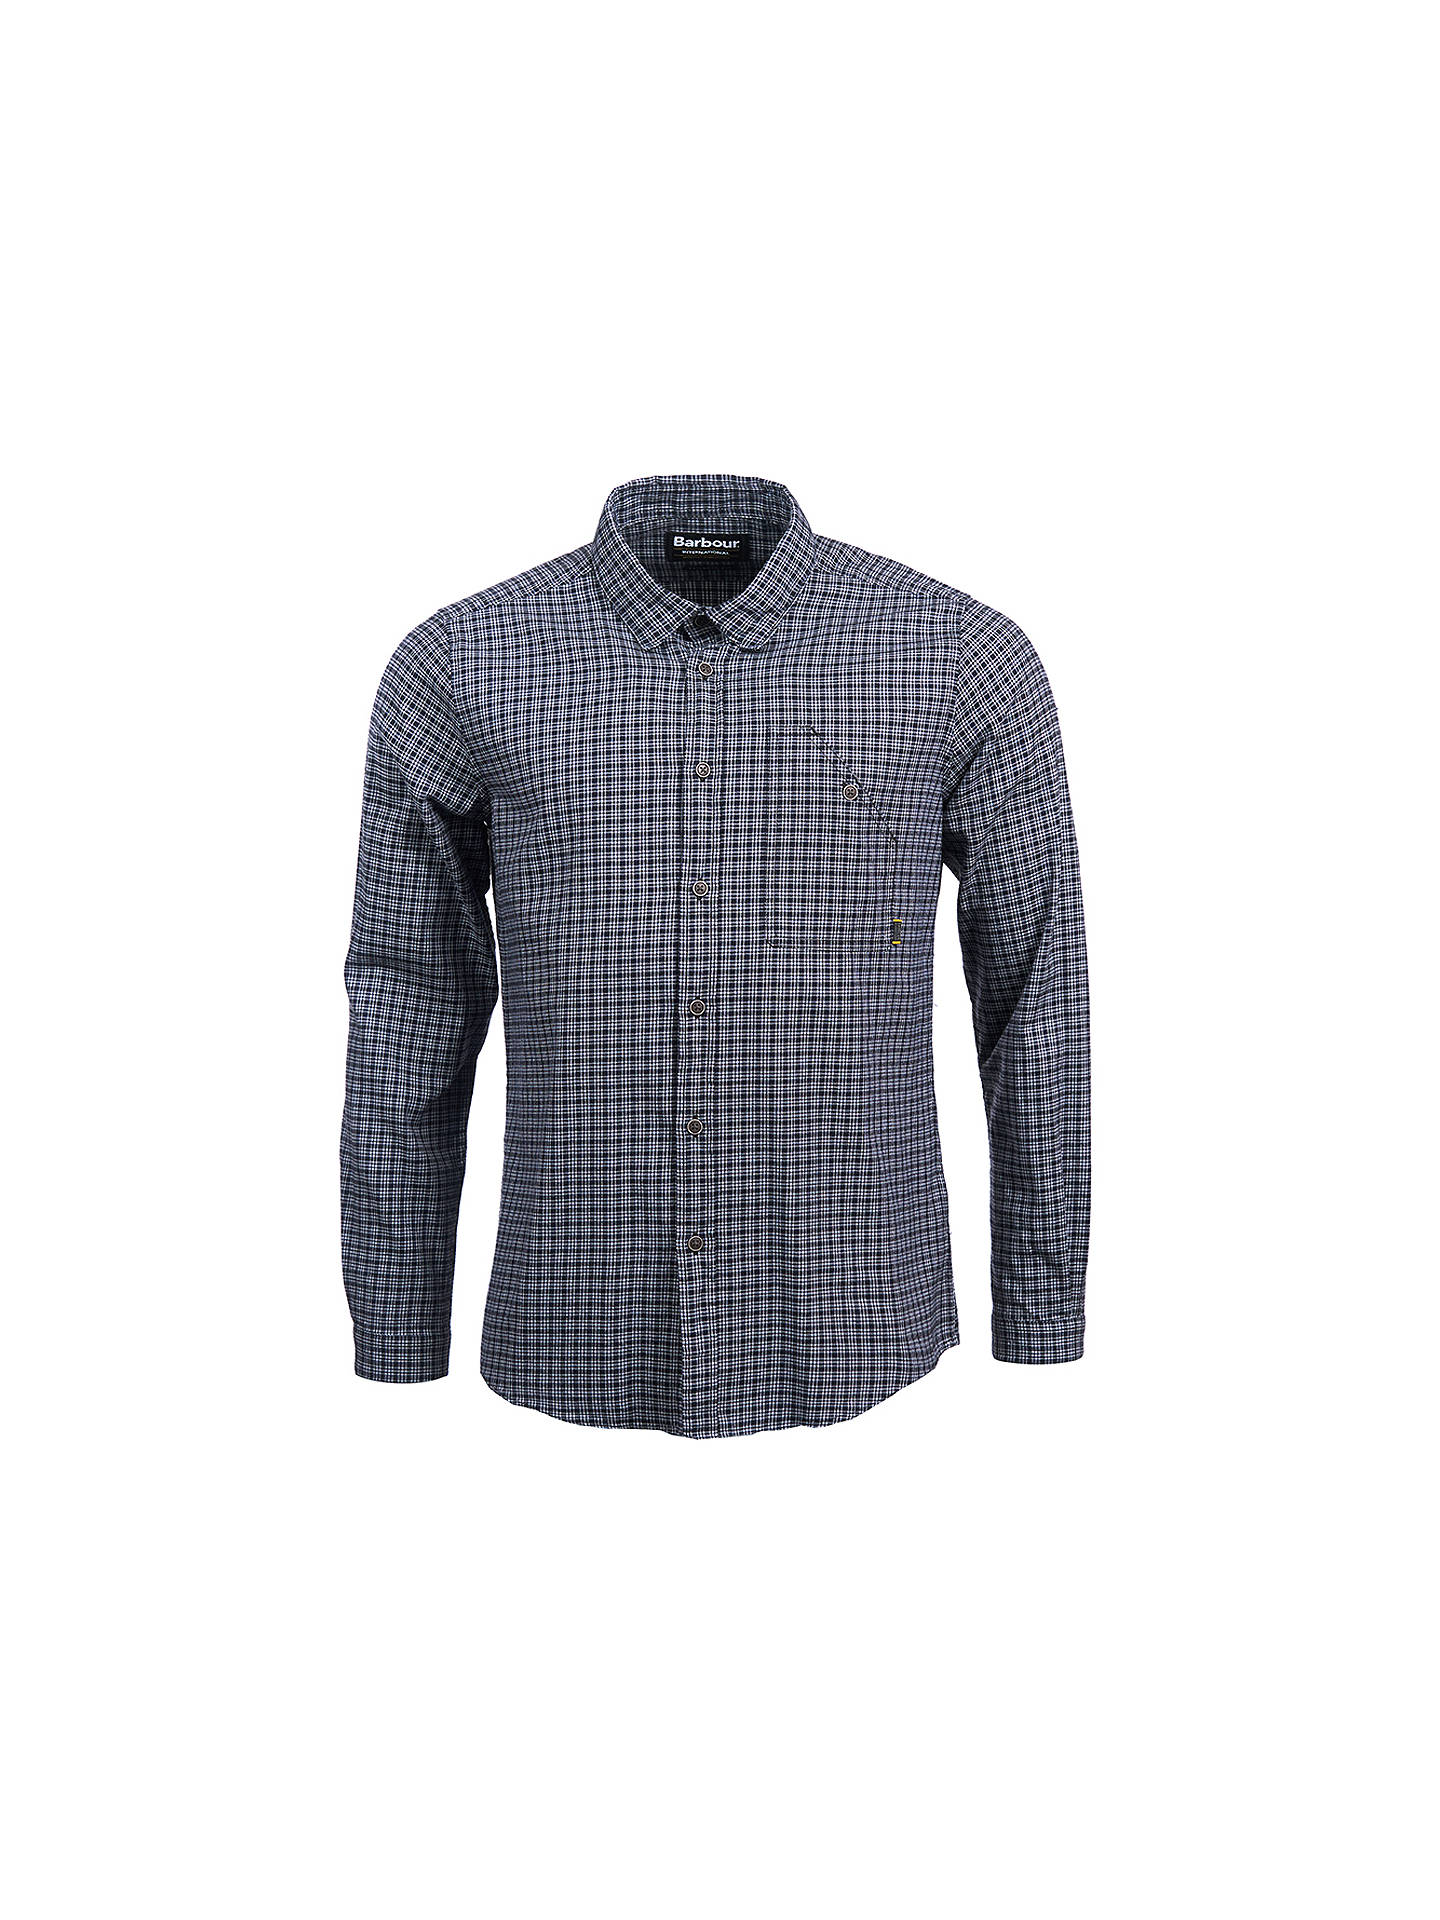 BuyBarbour International Elite Long Sleeve Check Shirt, Black, XL Online at johnlewis.com